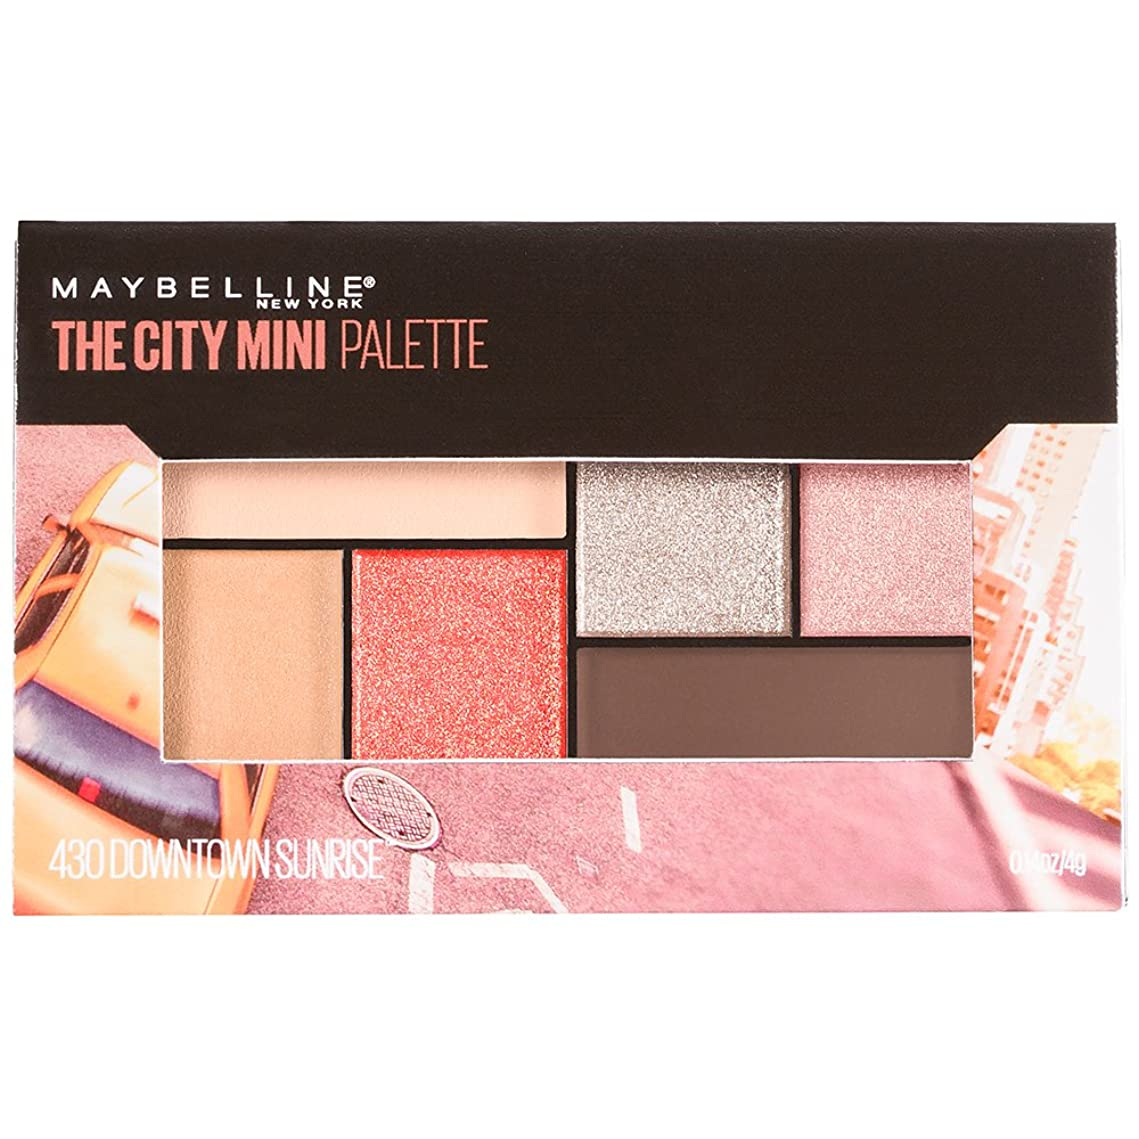 MAYBELLINE The City Mini Palette - Downtown Sunrise (並行輸入品)